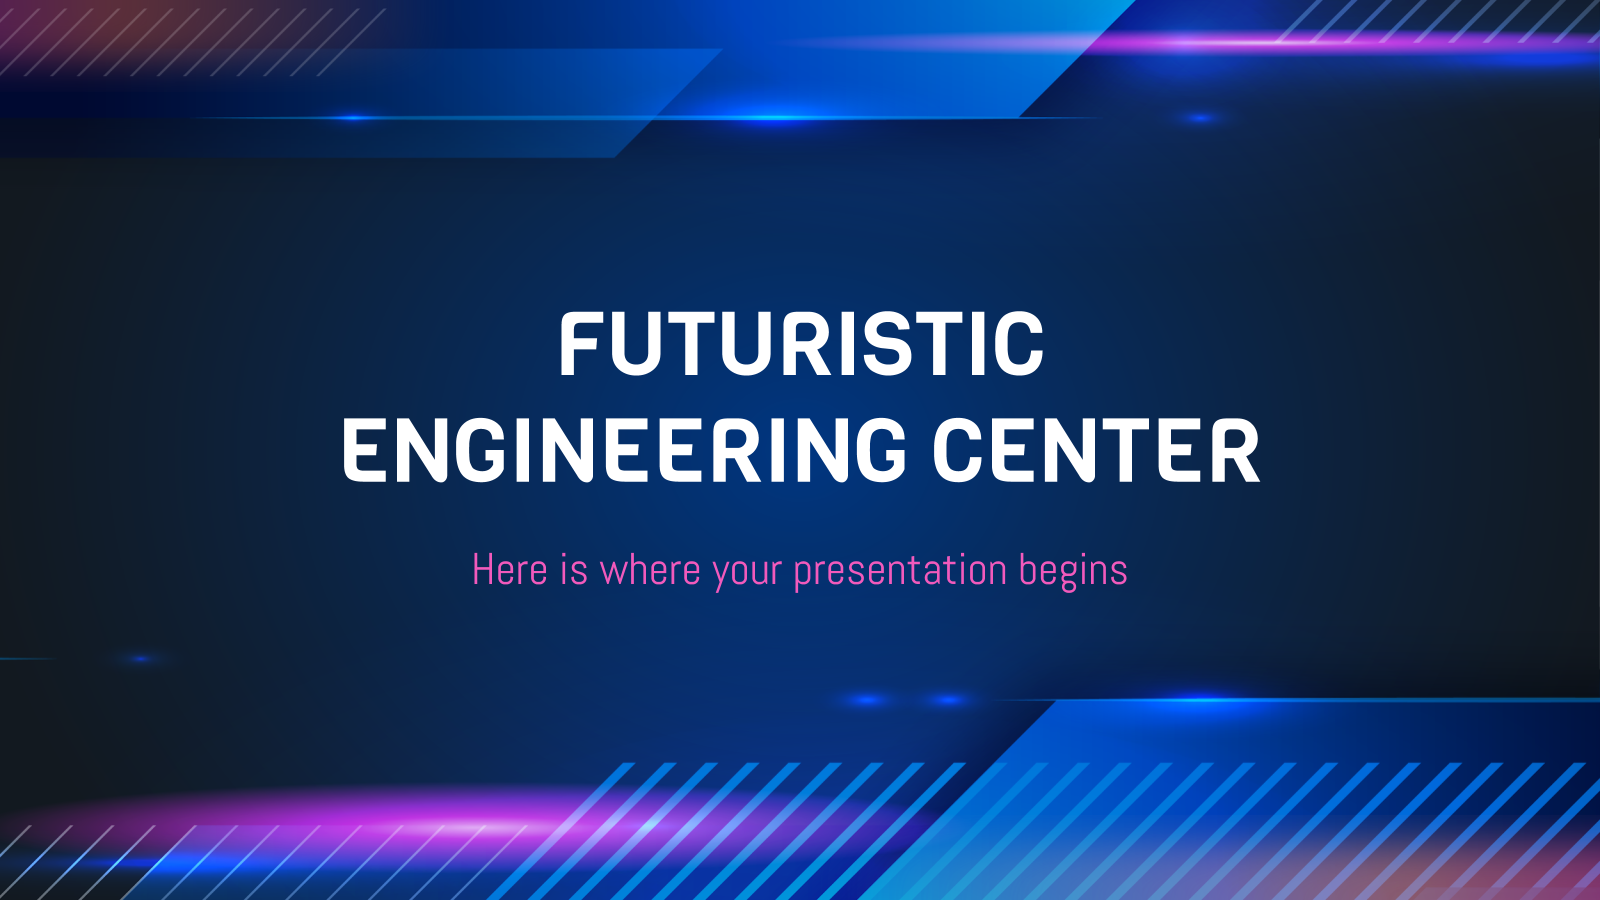 Futuristic Engineering Center presentation template